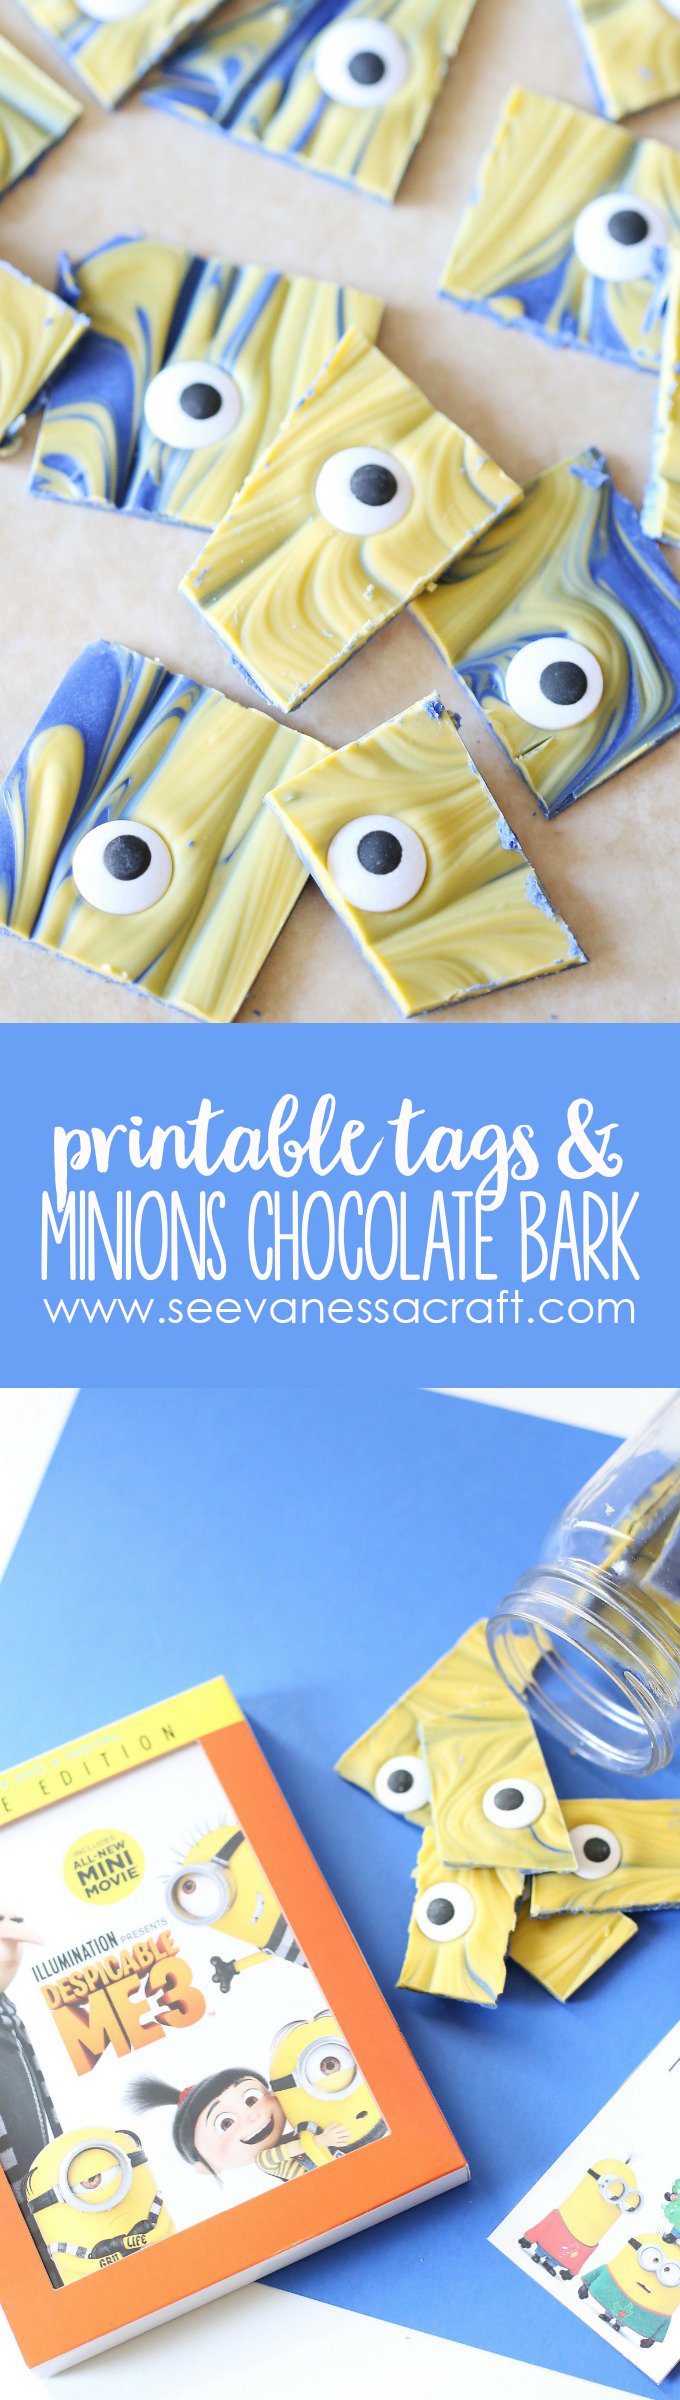 Minions Chocolate Bark Recipe and Printable Gift Tags